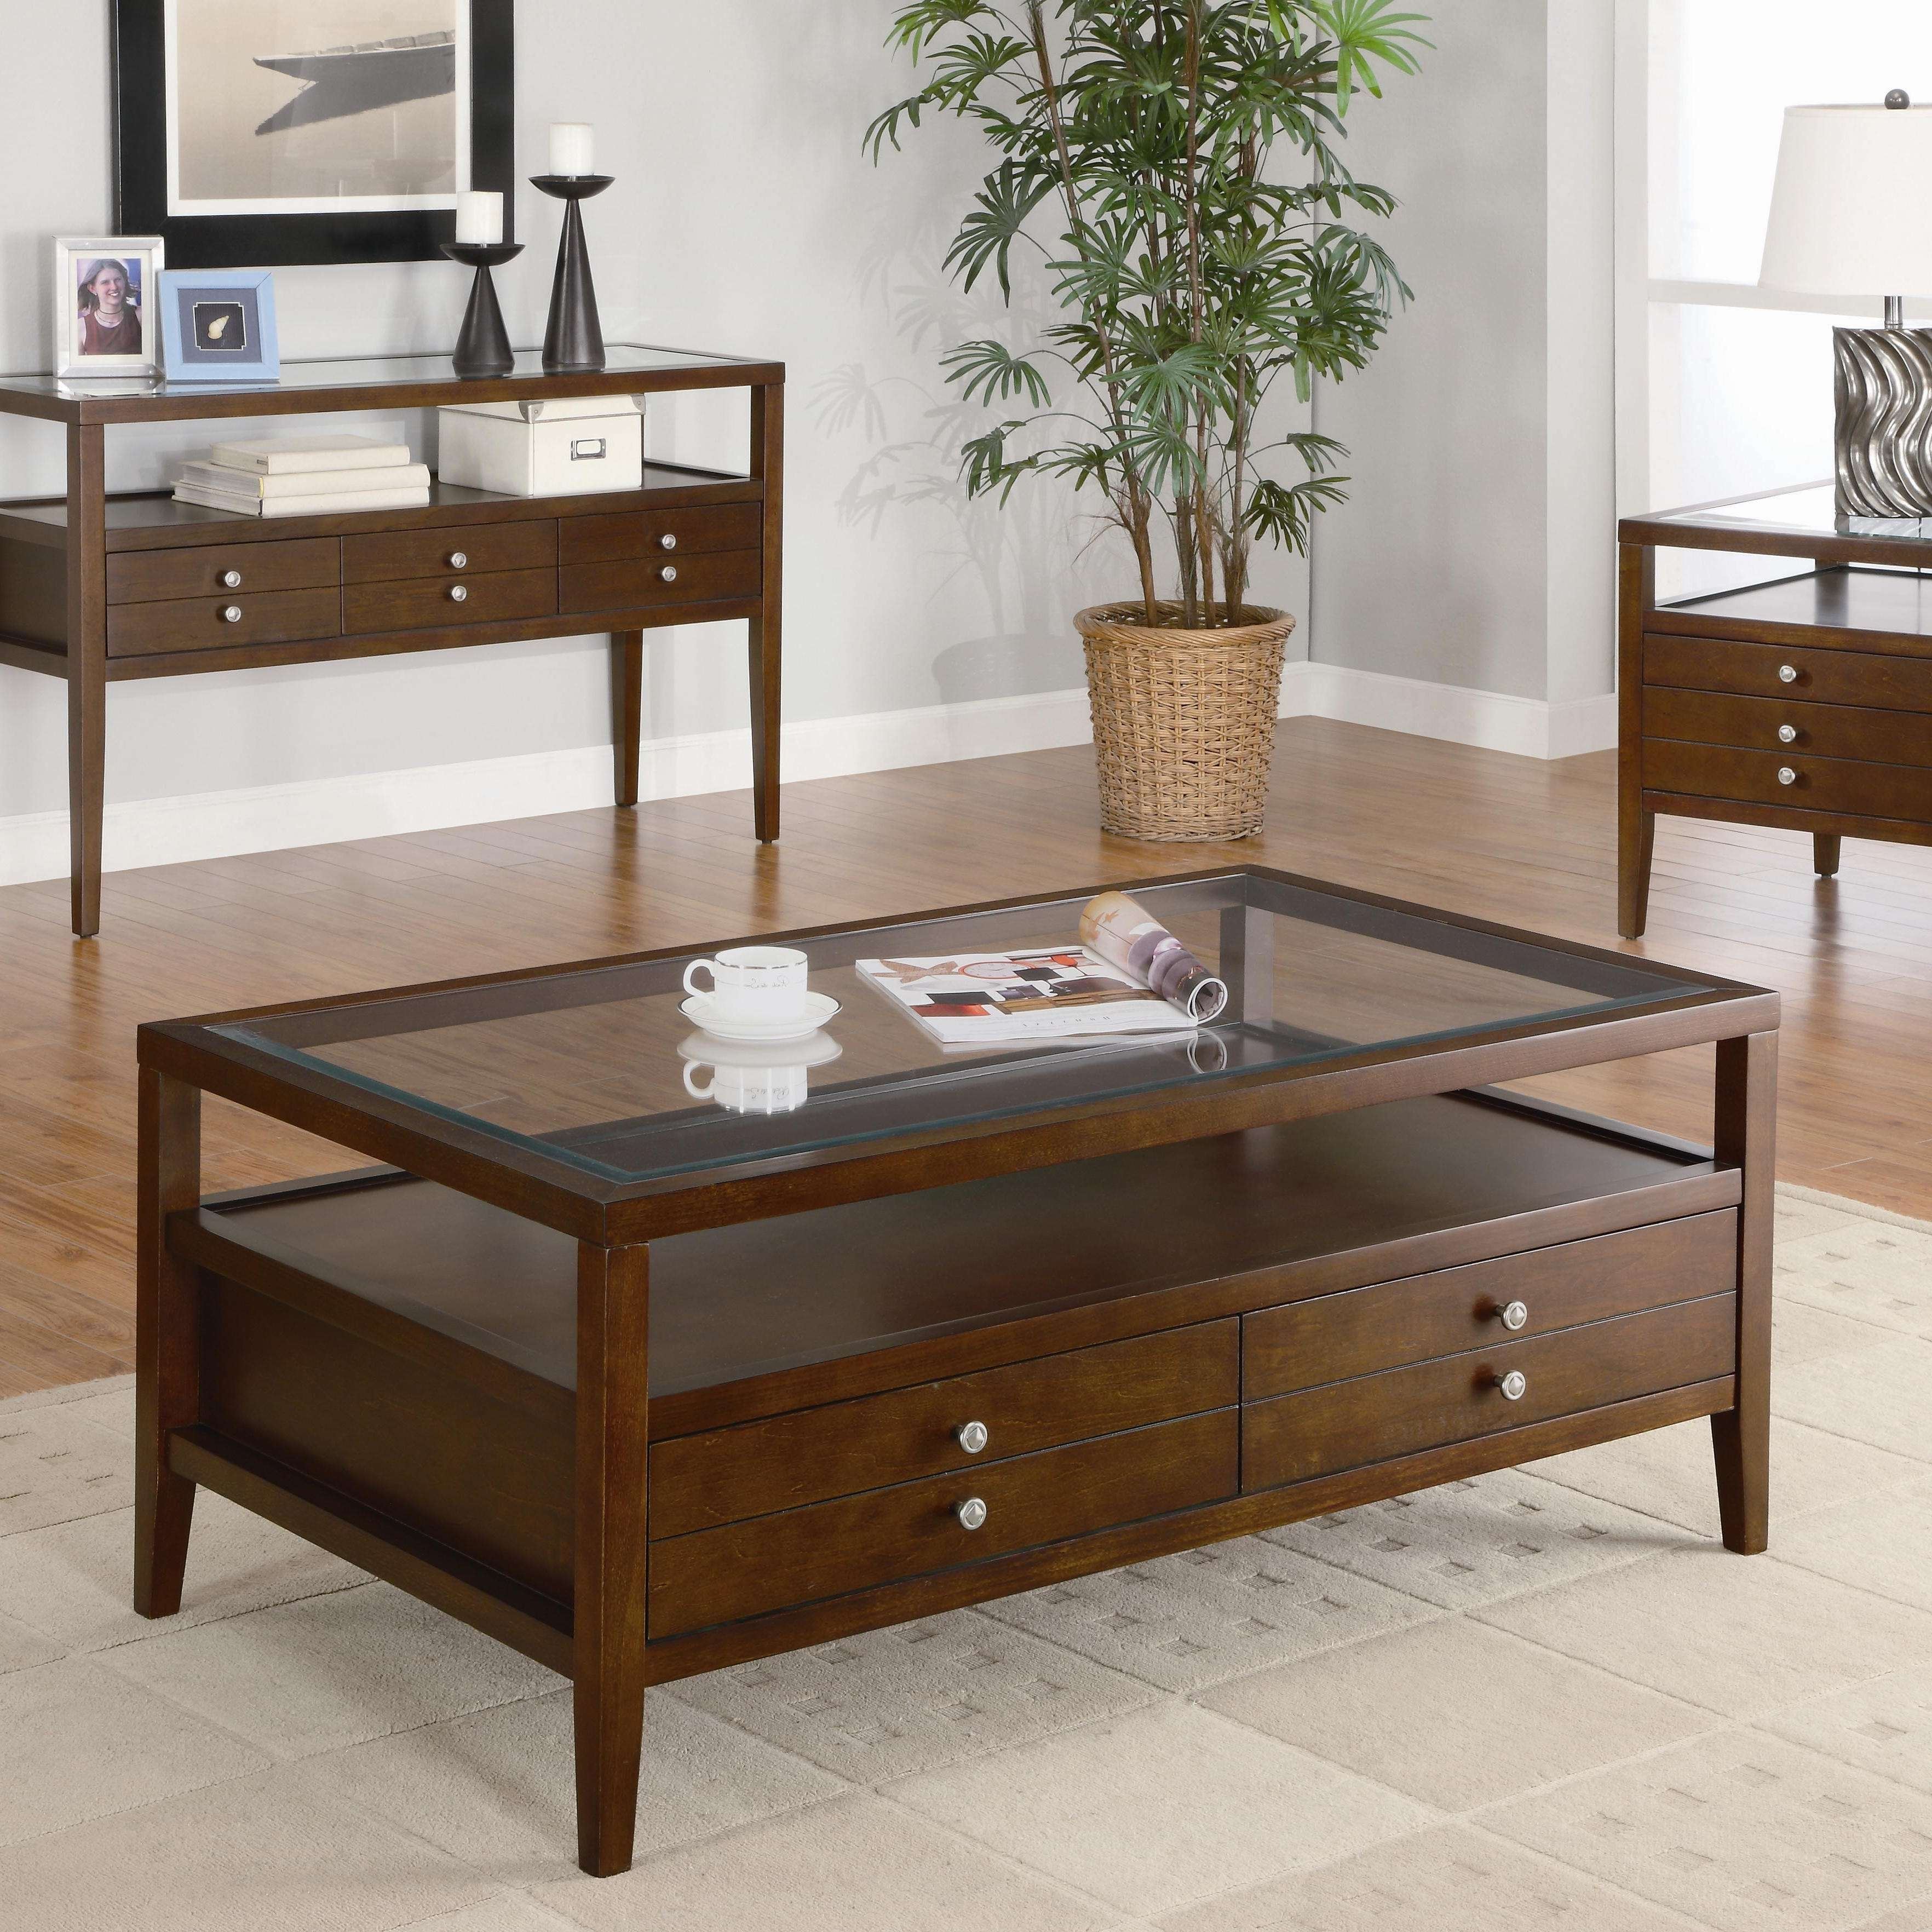 Famous Dark Wood Coffee Tables With Glass Top Regarding Living Room : Living Room Furniture Modern Coffee Tables And (View 5 of 23)